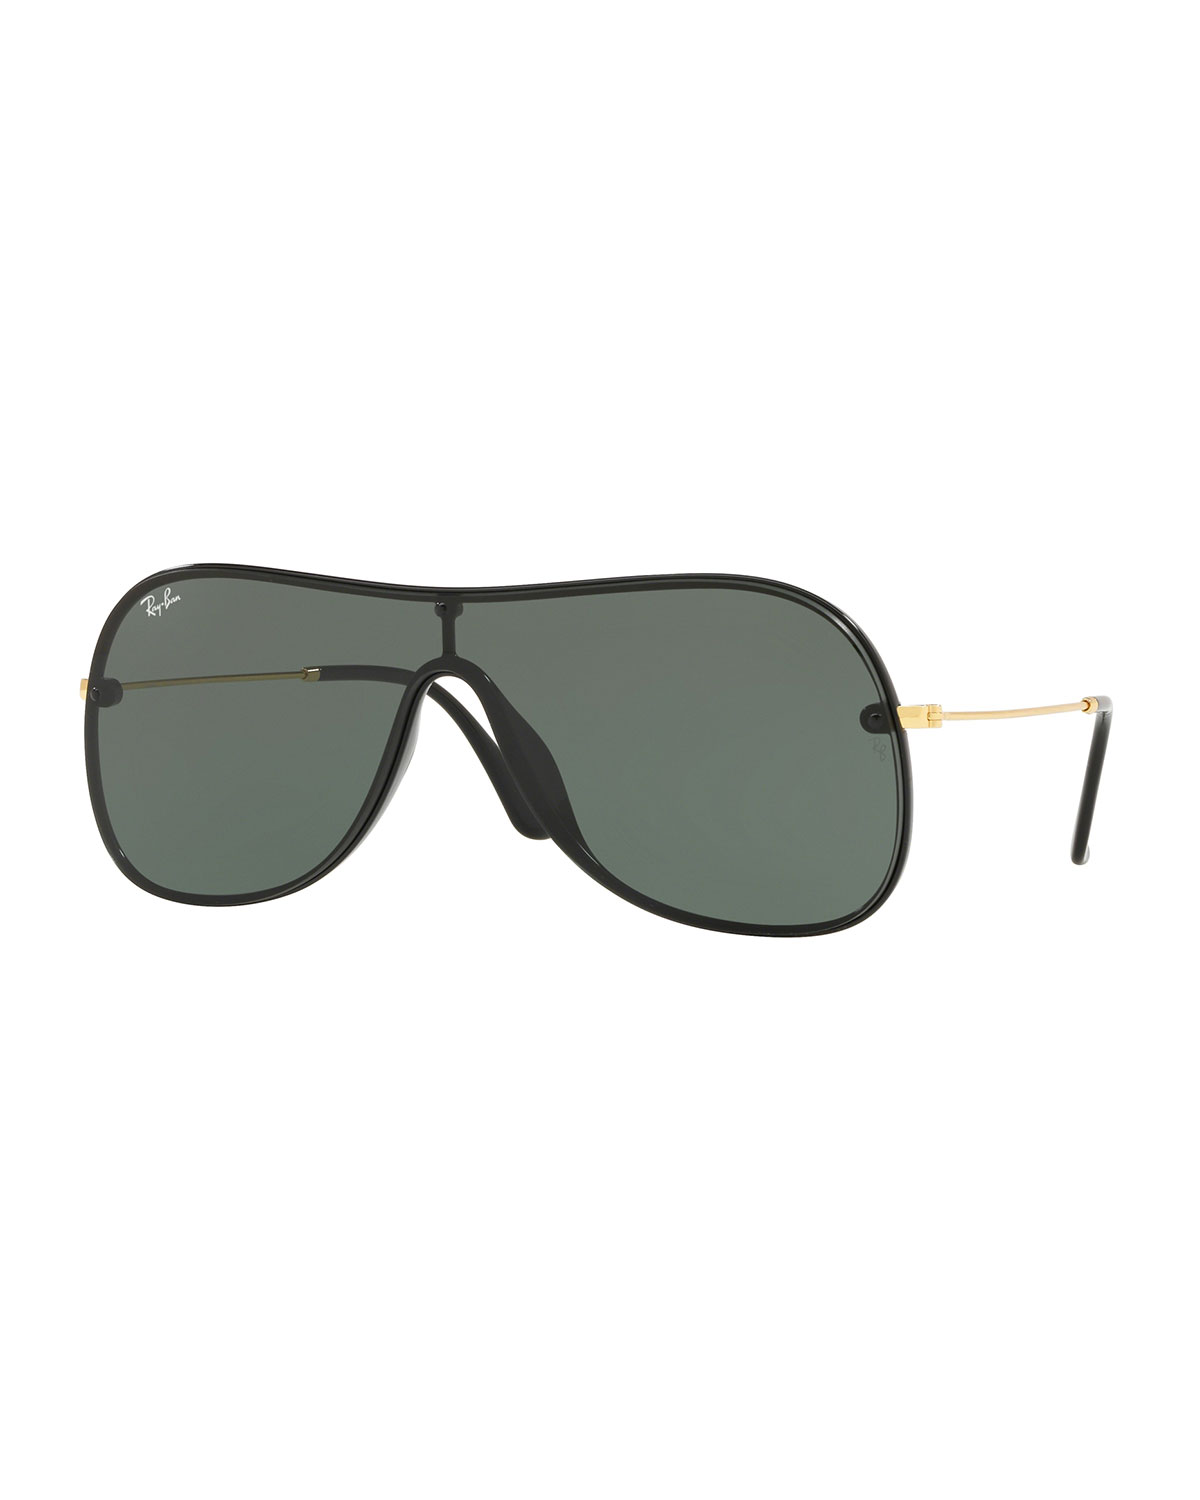 Lens-Over-Frame Aviator Sunglasses